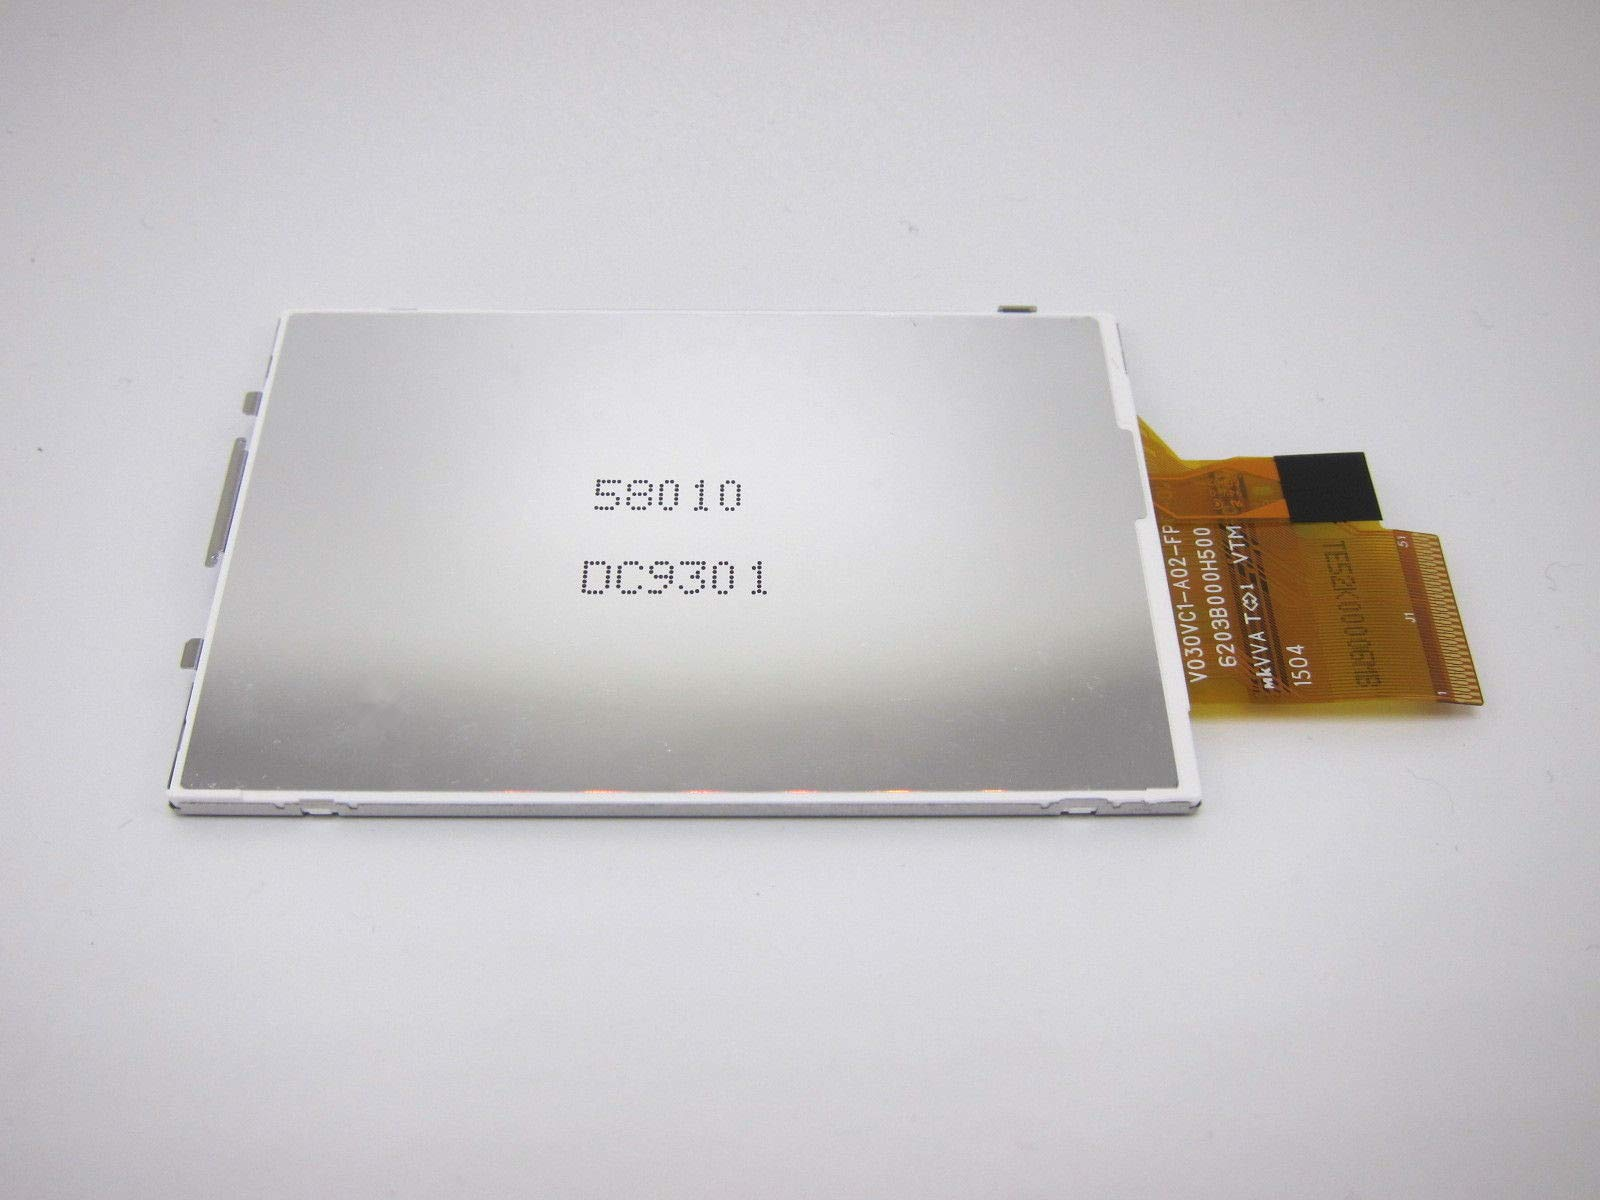 Replacement New LCD Display Screen SYP0013 for Panasonic Lumix DMC-LX100 DMC-LX100GK LX100 by mEOZIADao (Image #2)